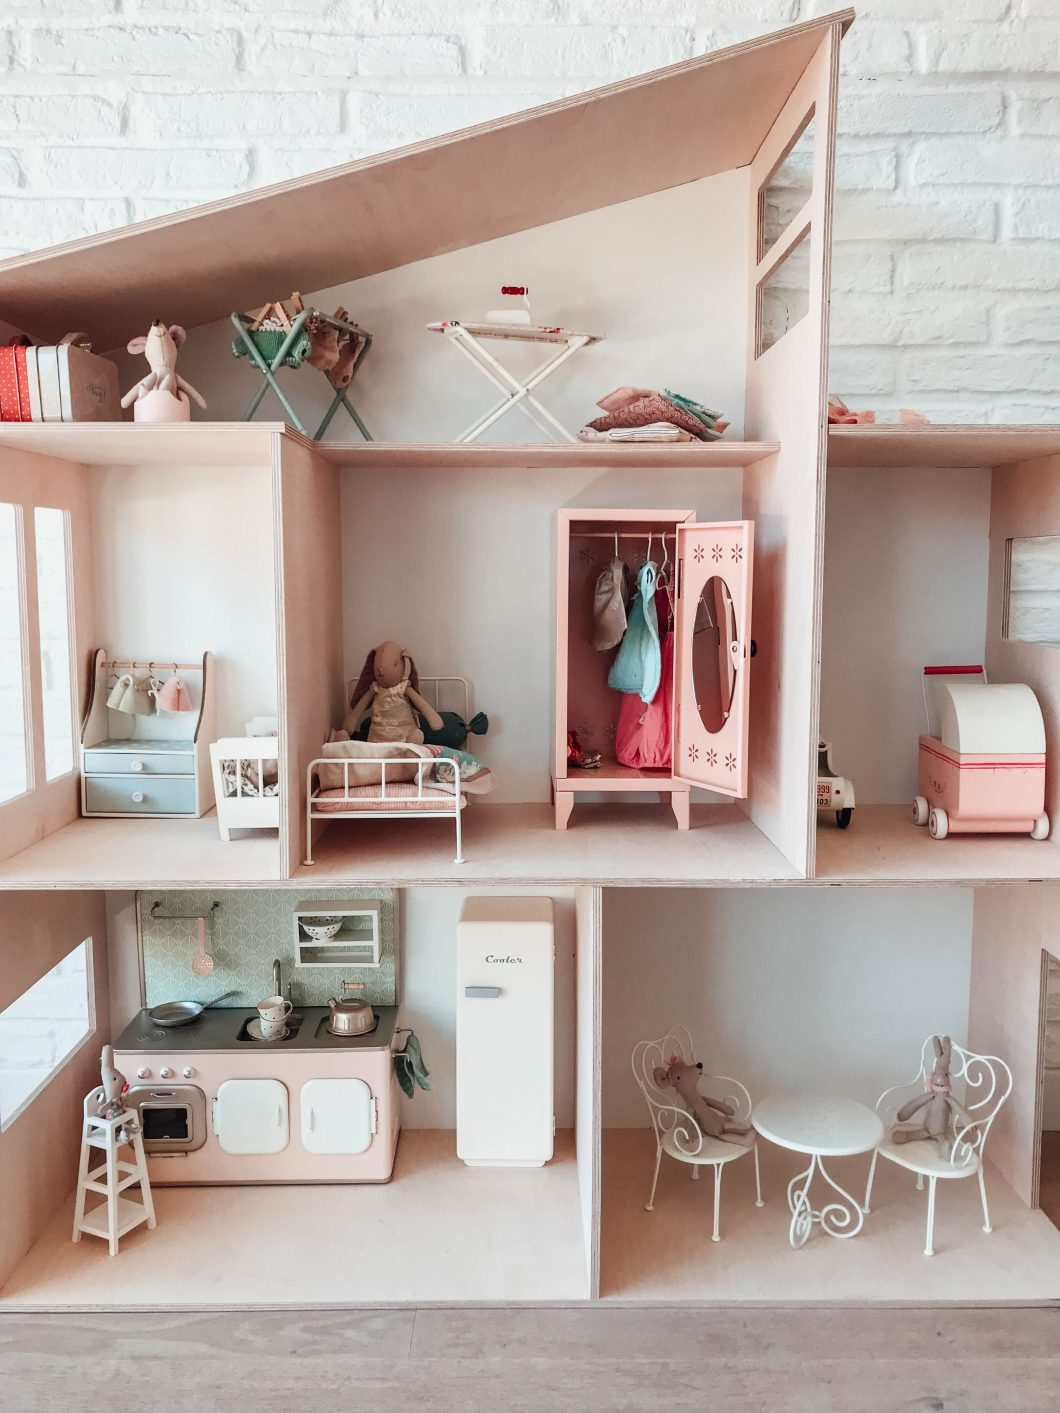 La Casa De Madera Muebles Casita Y Muebles Maileg Estoreta Family Craft And Deco